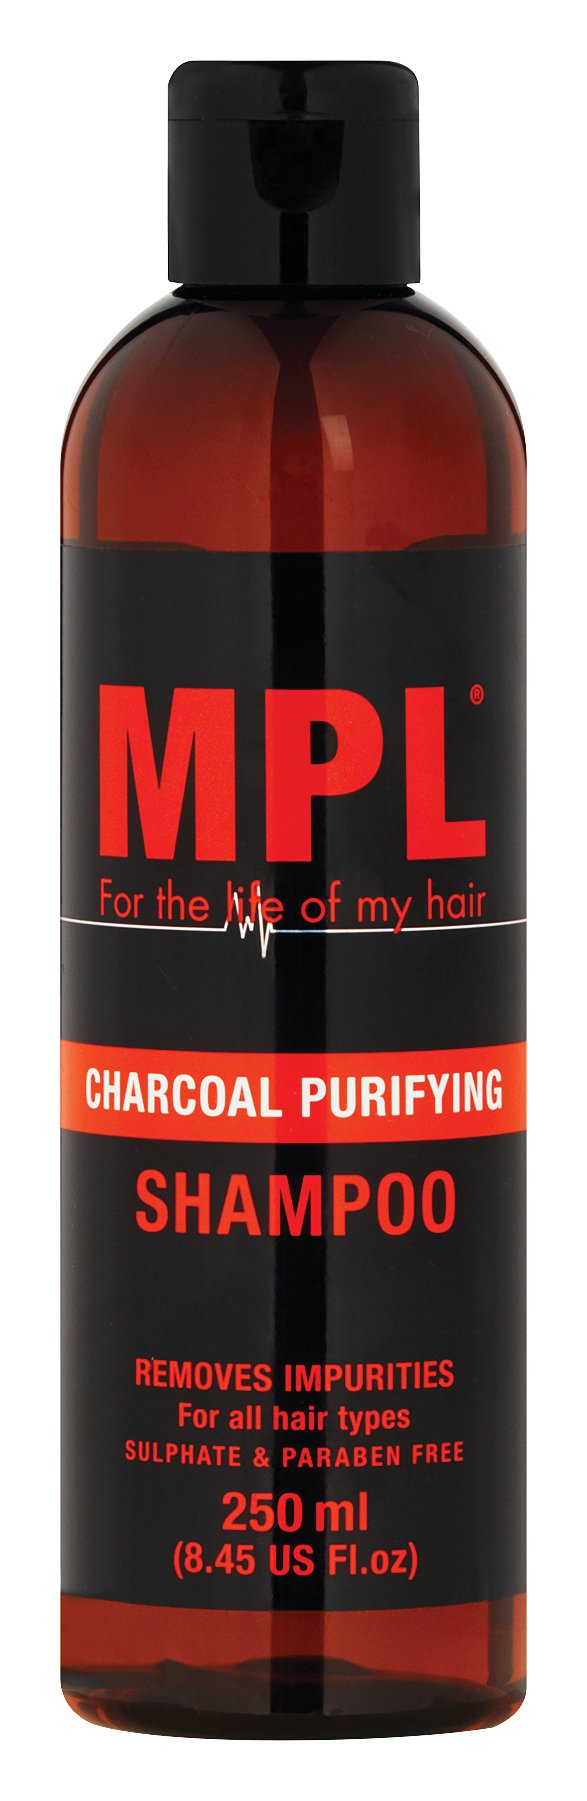 MPL Charcoal Shampoo 250ml 12-Pack